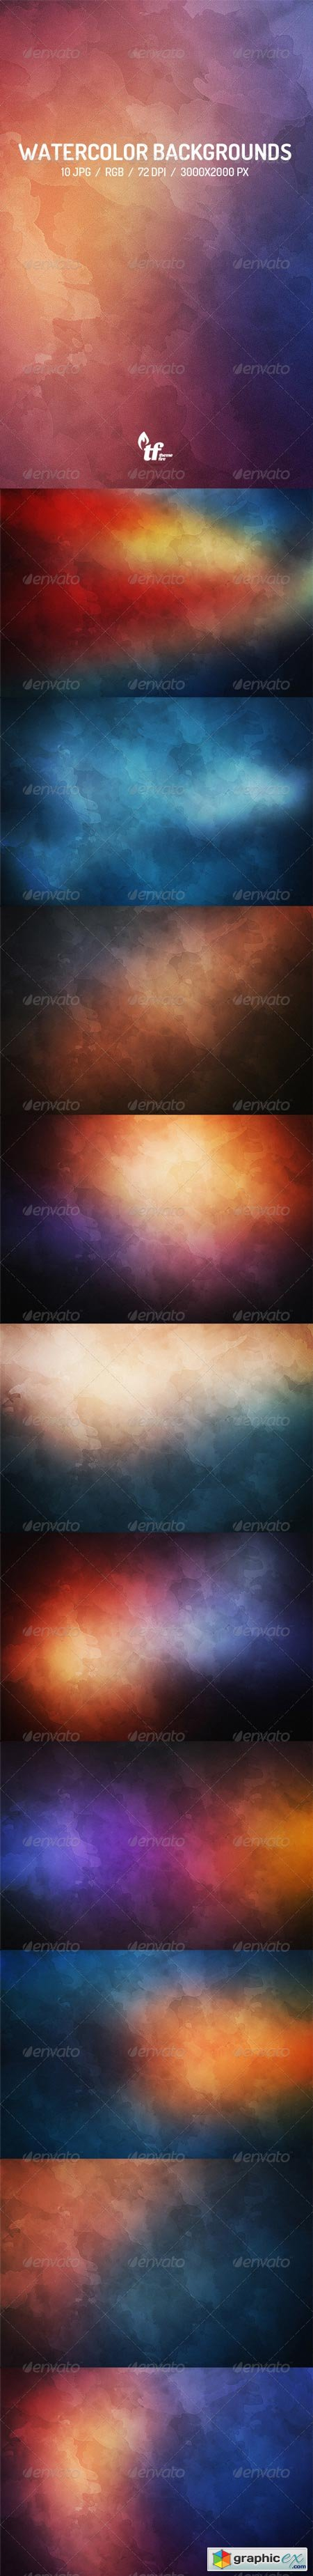 10 Watercolor Backgrounds 7839387